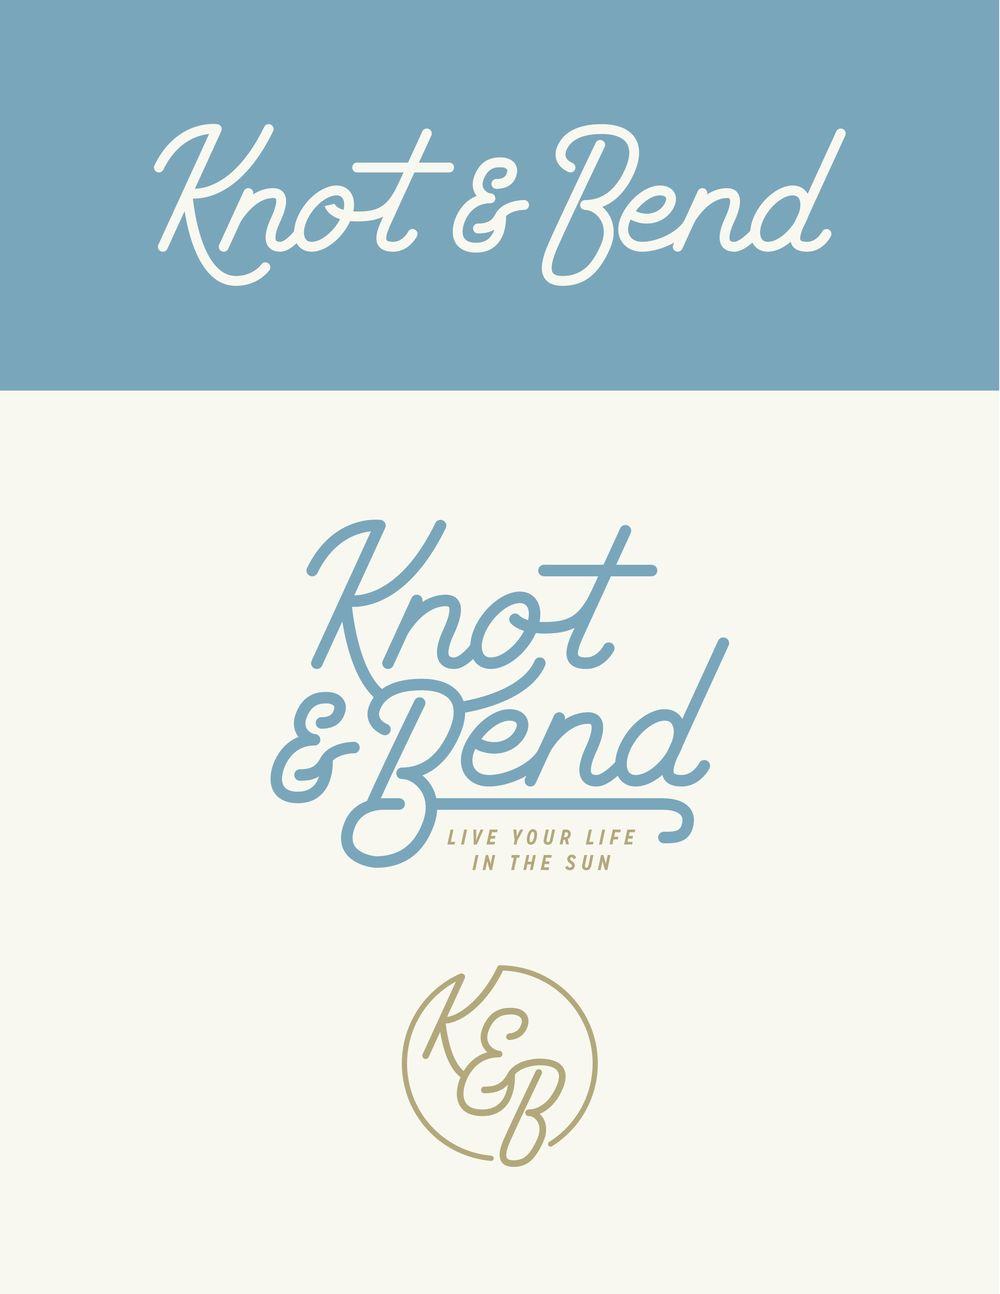 Knot+Bend - image 7 - student project